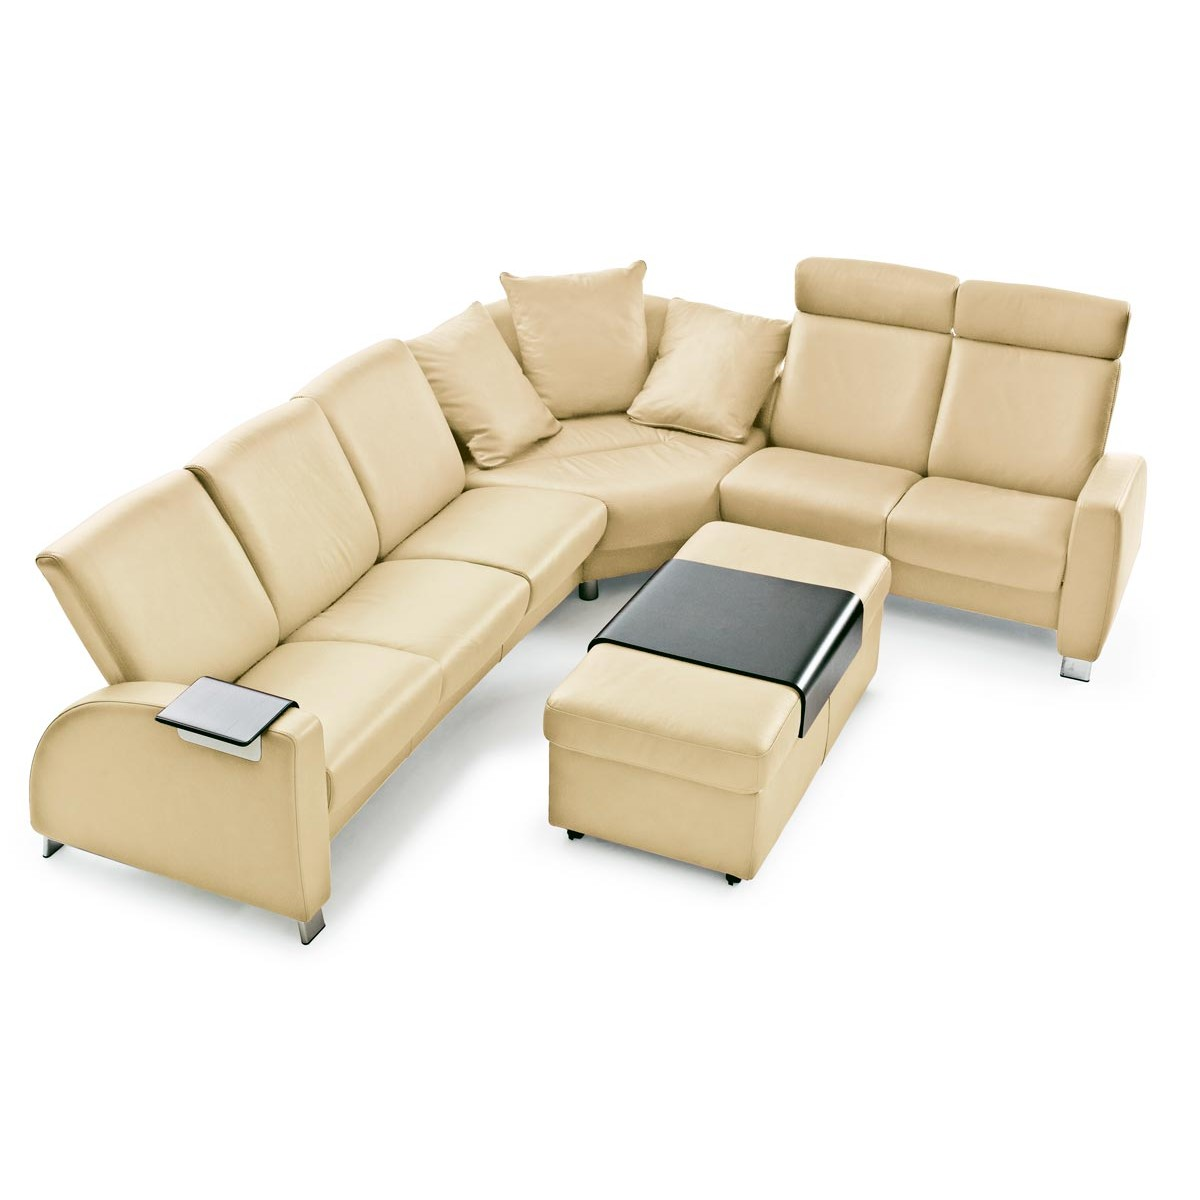 stressless sofa stressless sofa review beautiful ekornes. Black Bedroom Furniture Sets. Home Design Ideas